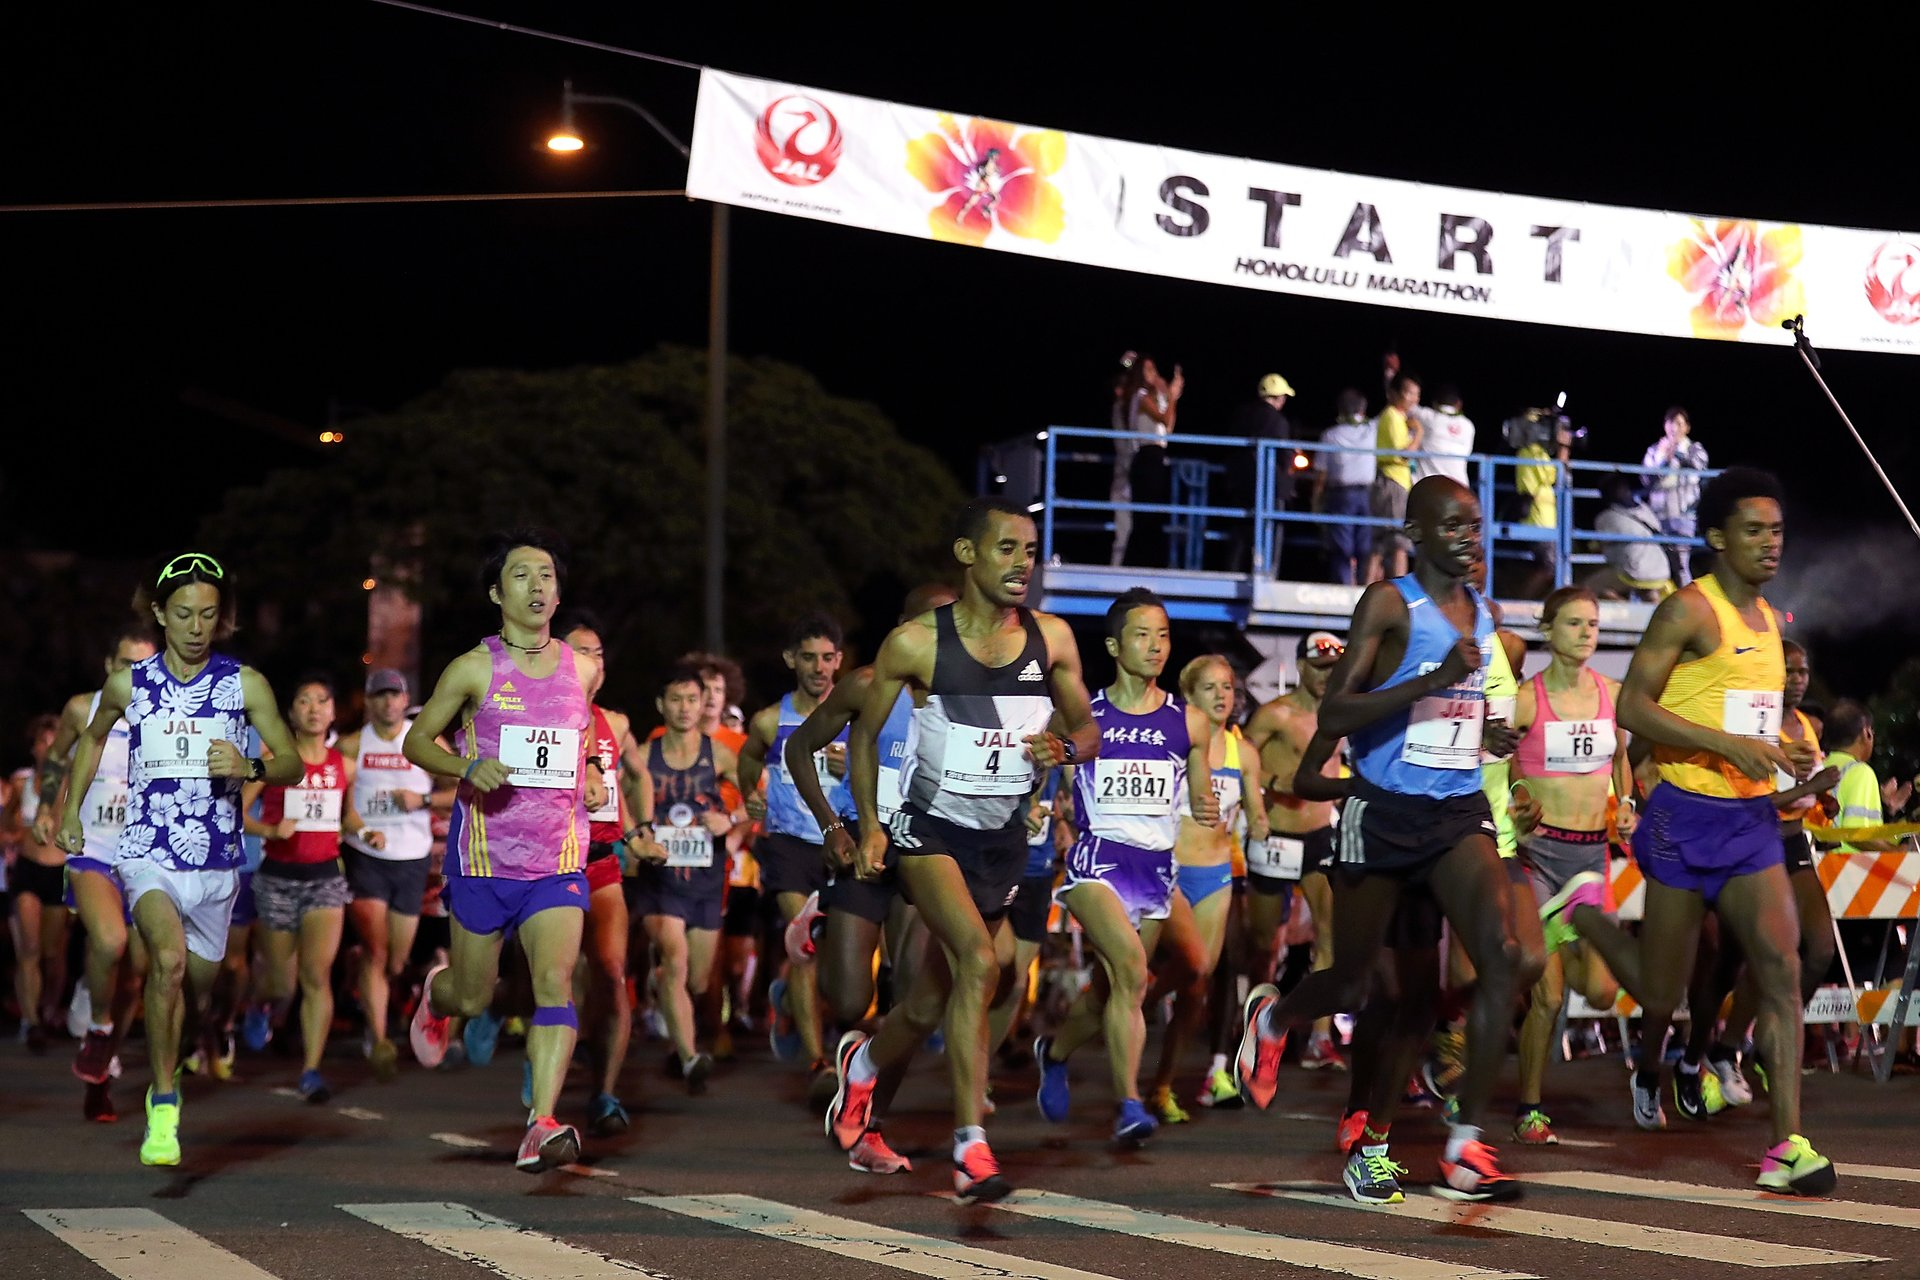 Honolulu Marathon in Hawaii - Best Season 2020